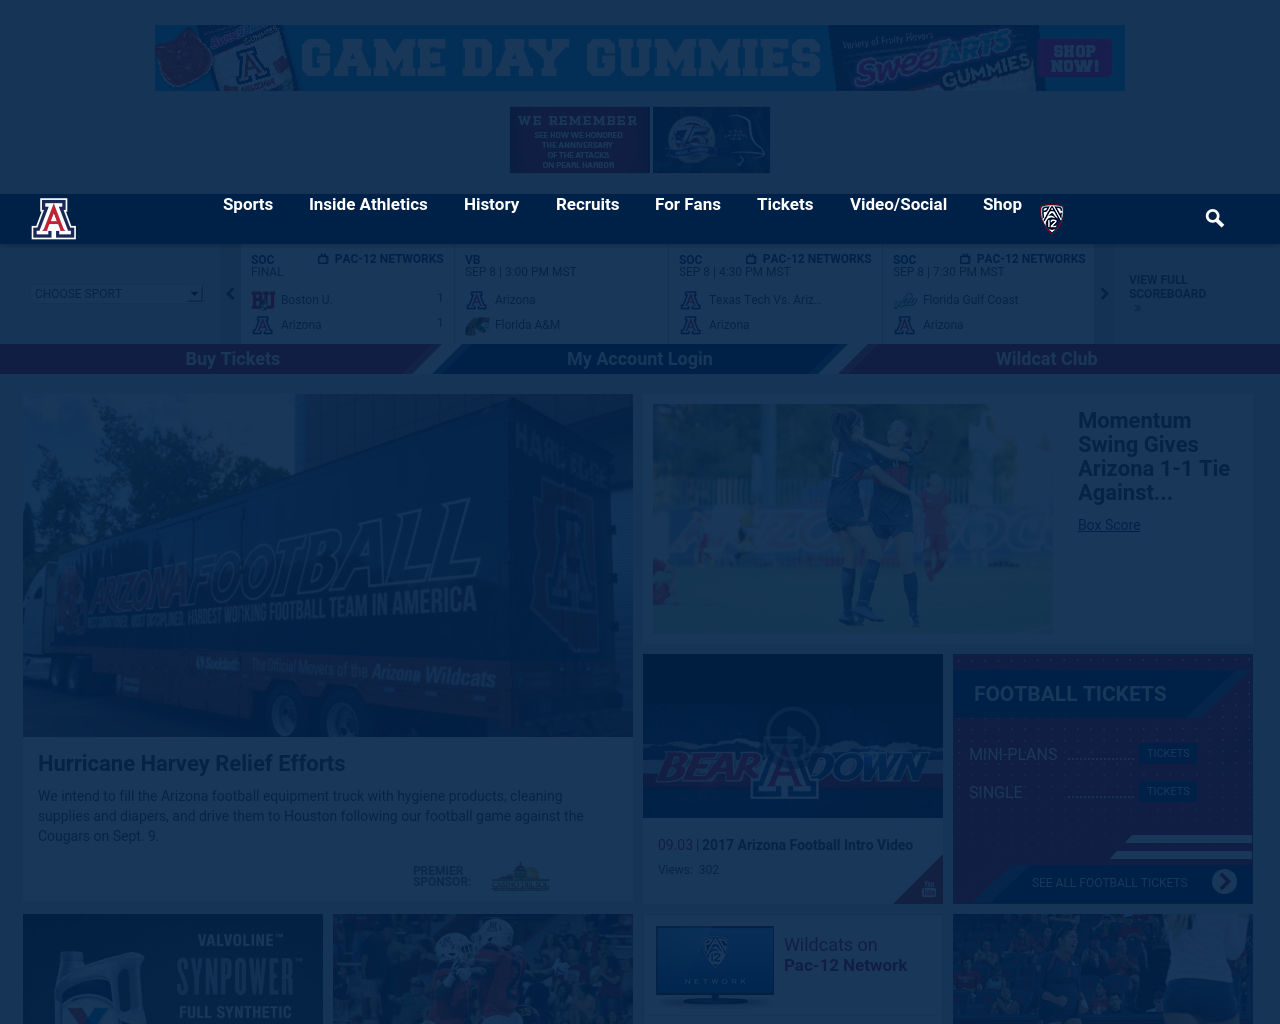 The-University-Of-Arizona---Official-Athletics-Website-Advertising-Reviews-Pricing